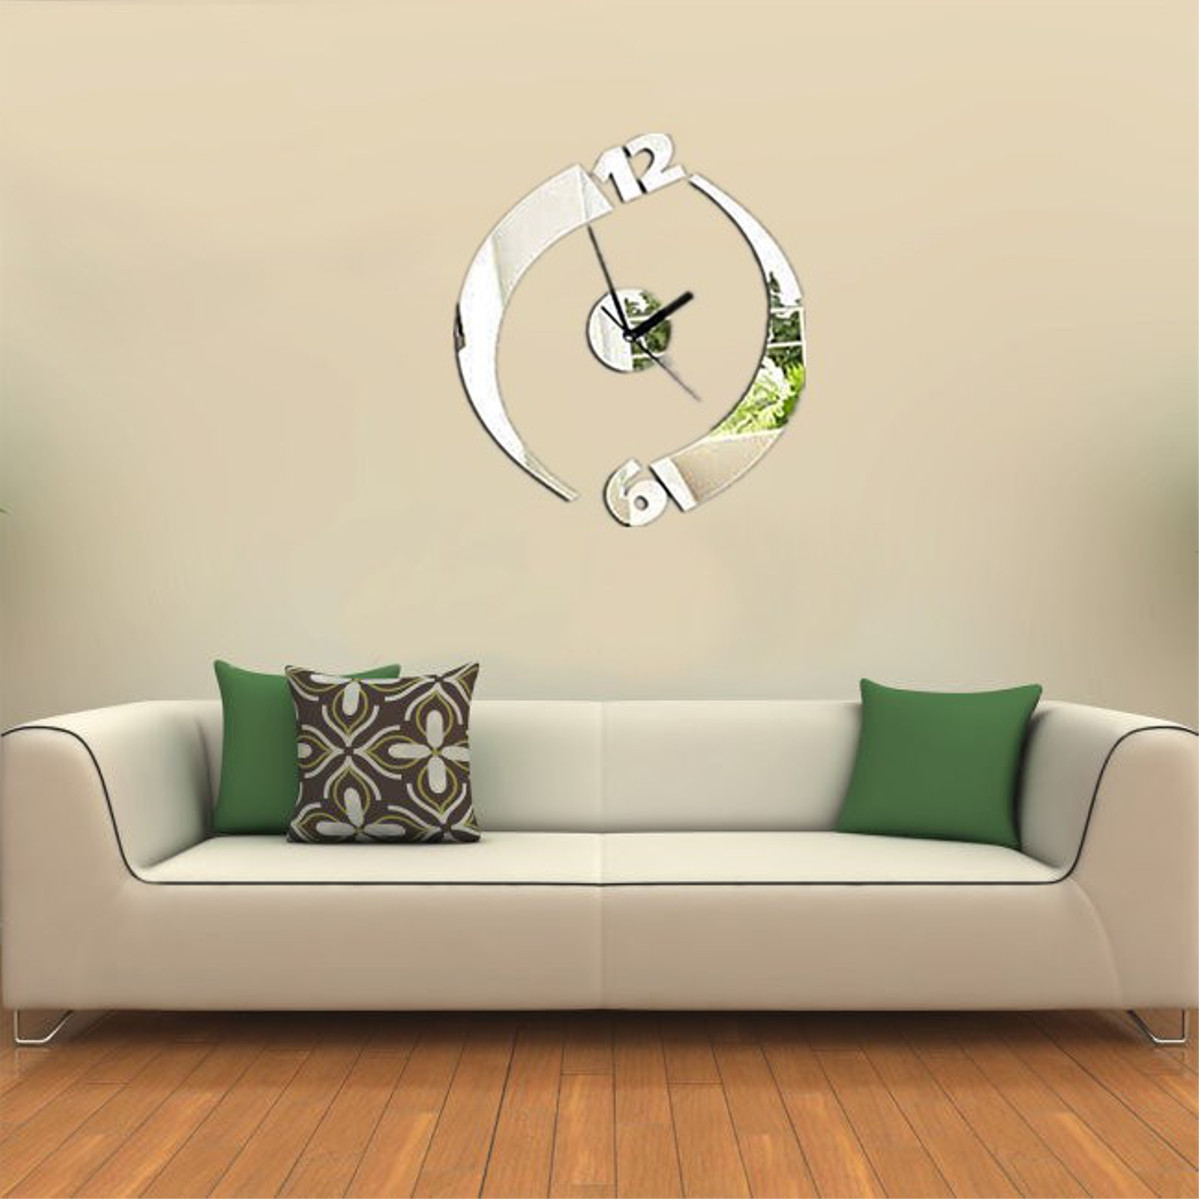 diy 3d horloge pendule murale art d coration design moderne mur maison salon ebay. Black Bedroom Furniture Sets. Home Design Ideas